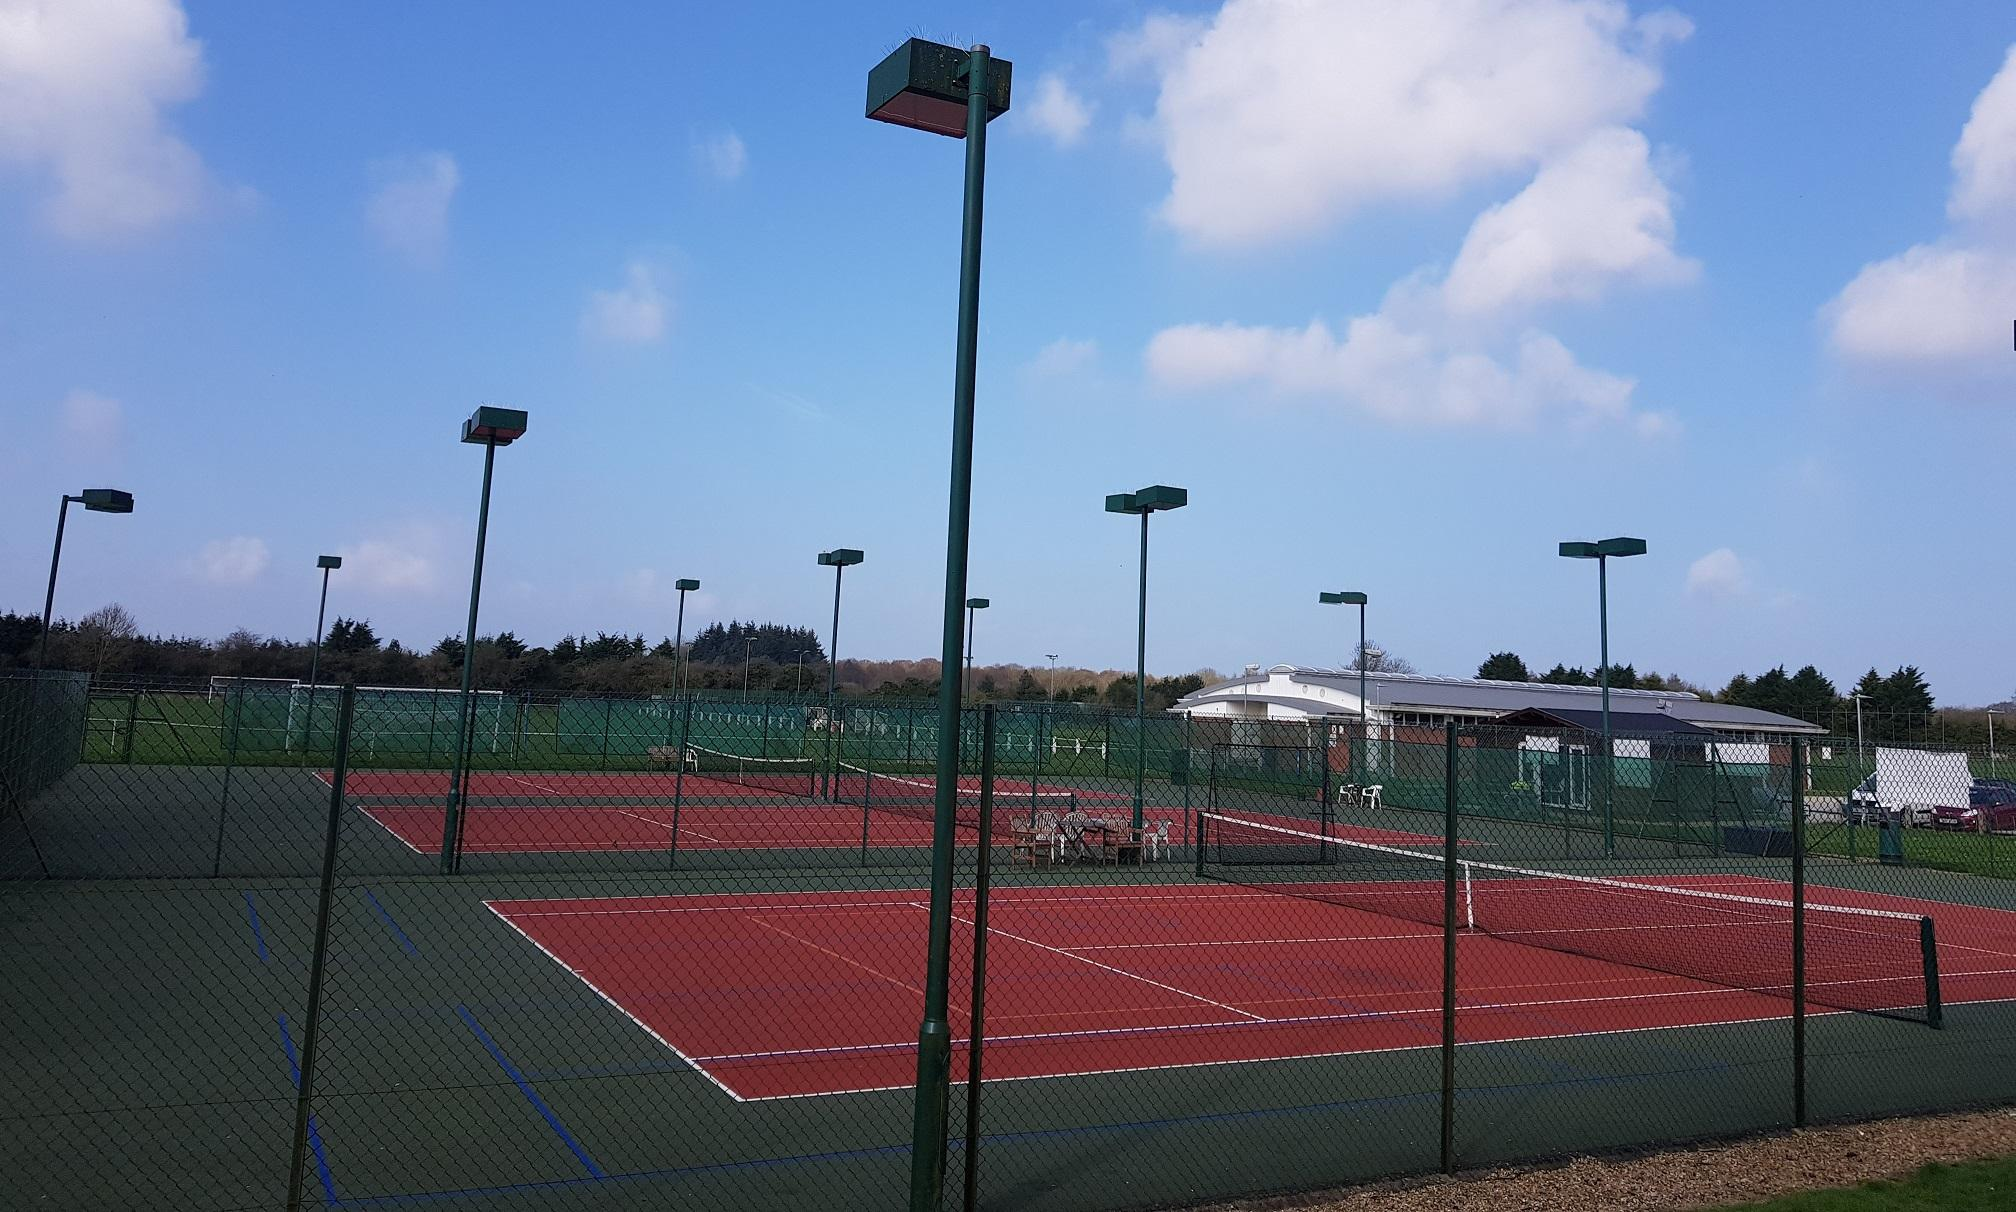 tennis club grounds